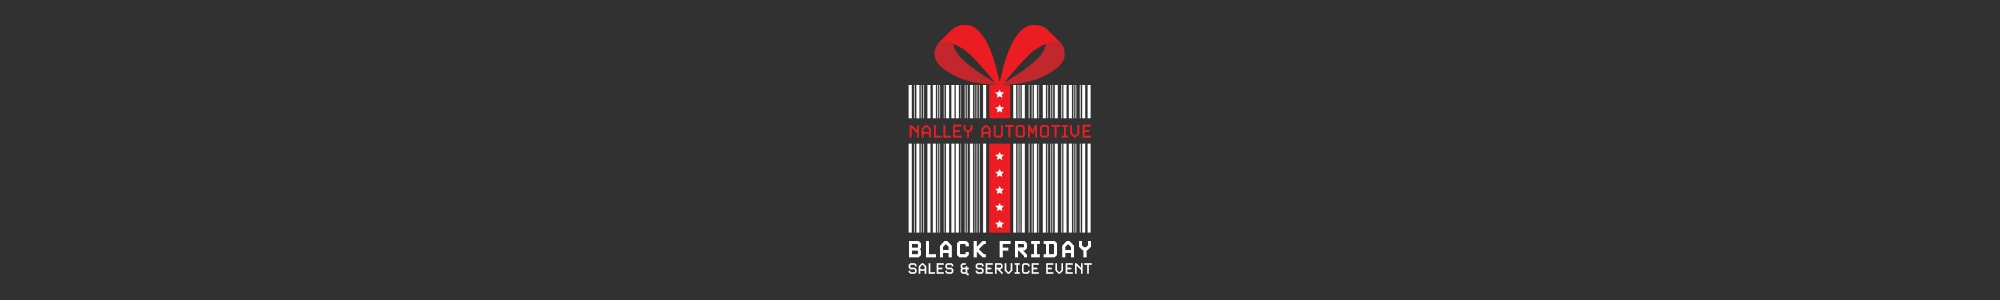 Nalley Black Friday Event